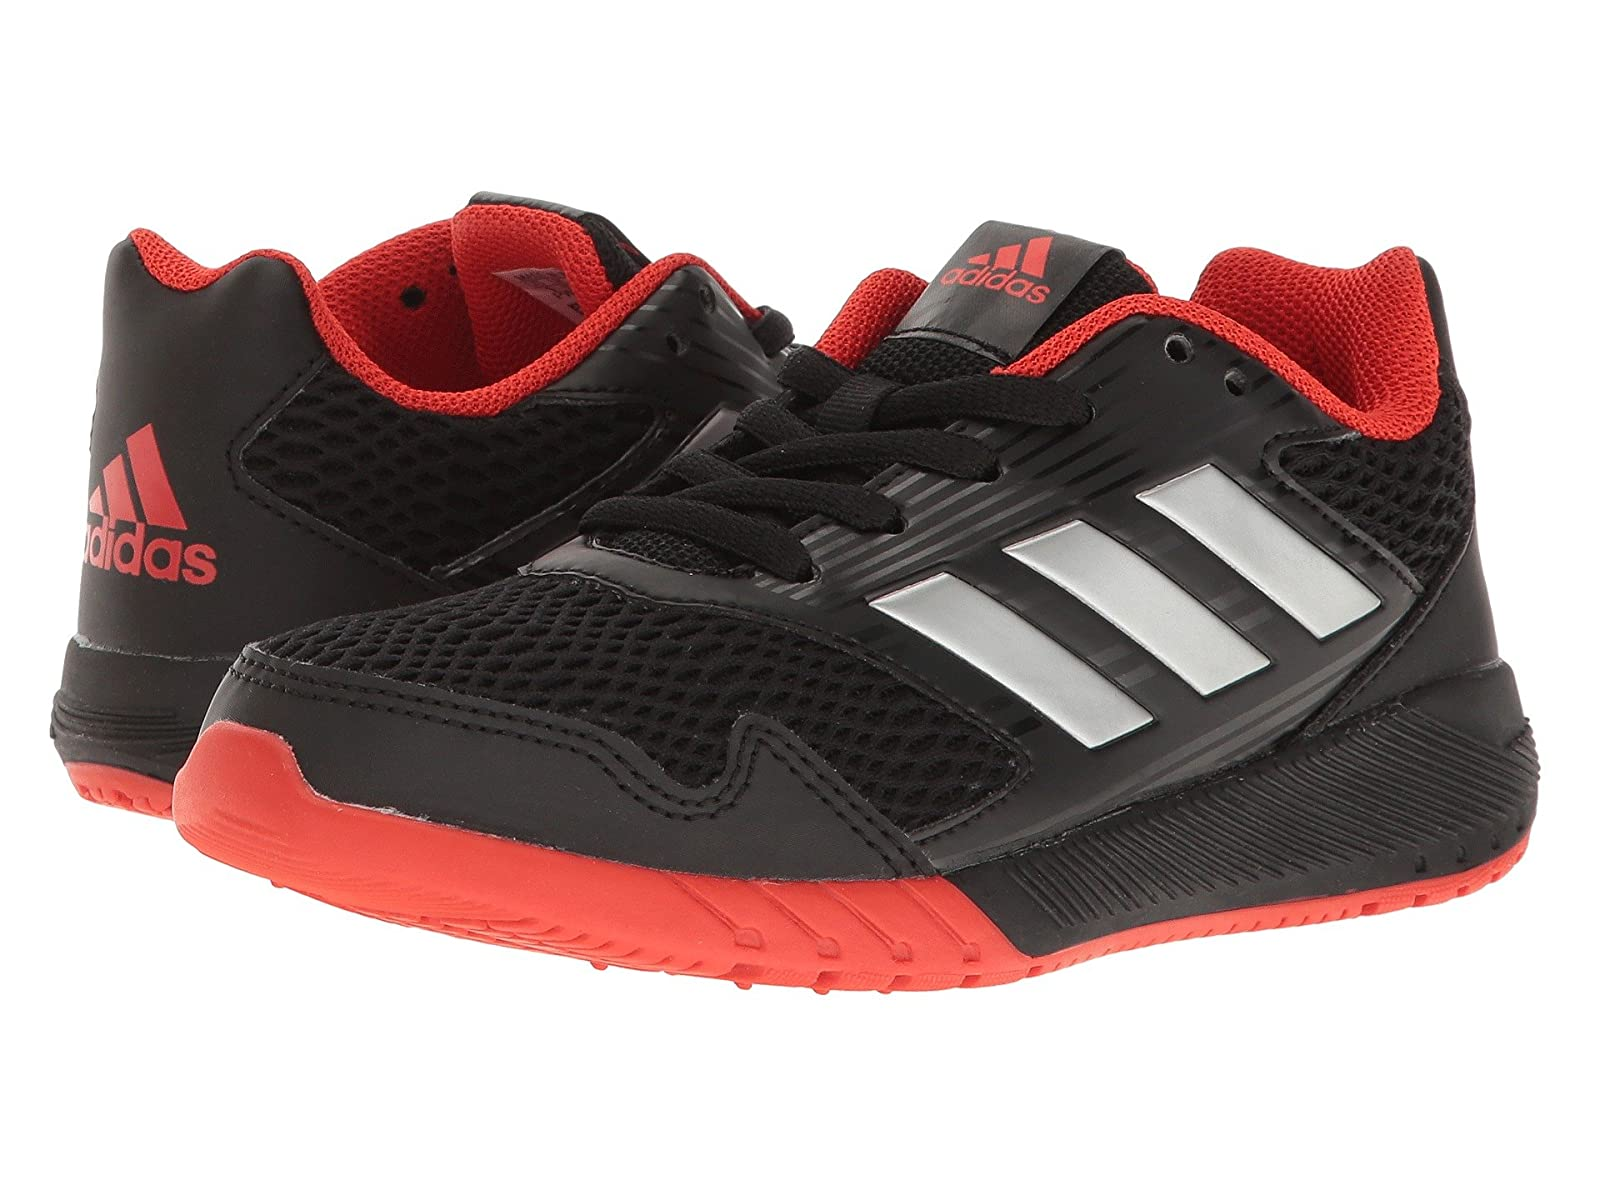 adidas Kids AltaRun (Little Kid/Big Kid)Atmospheric grades have affordable shoes